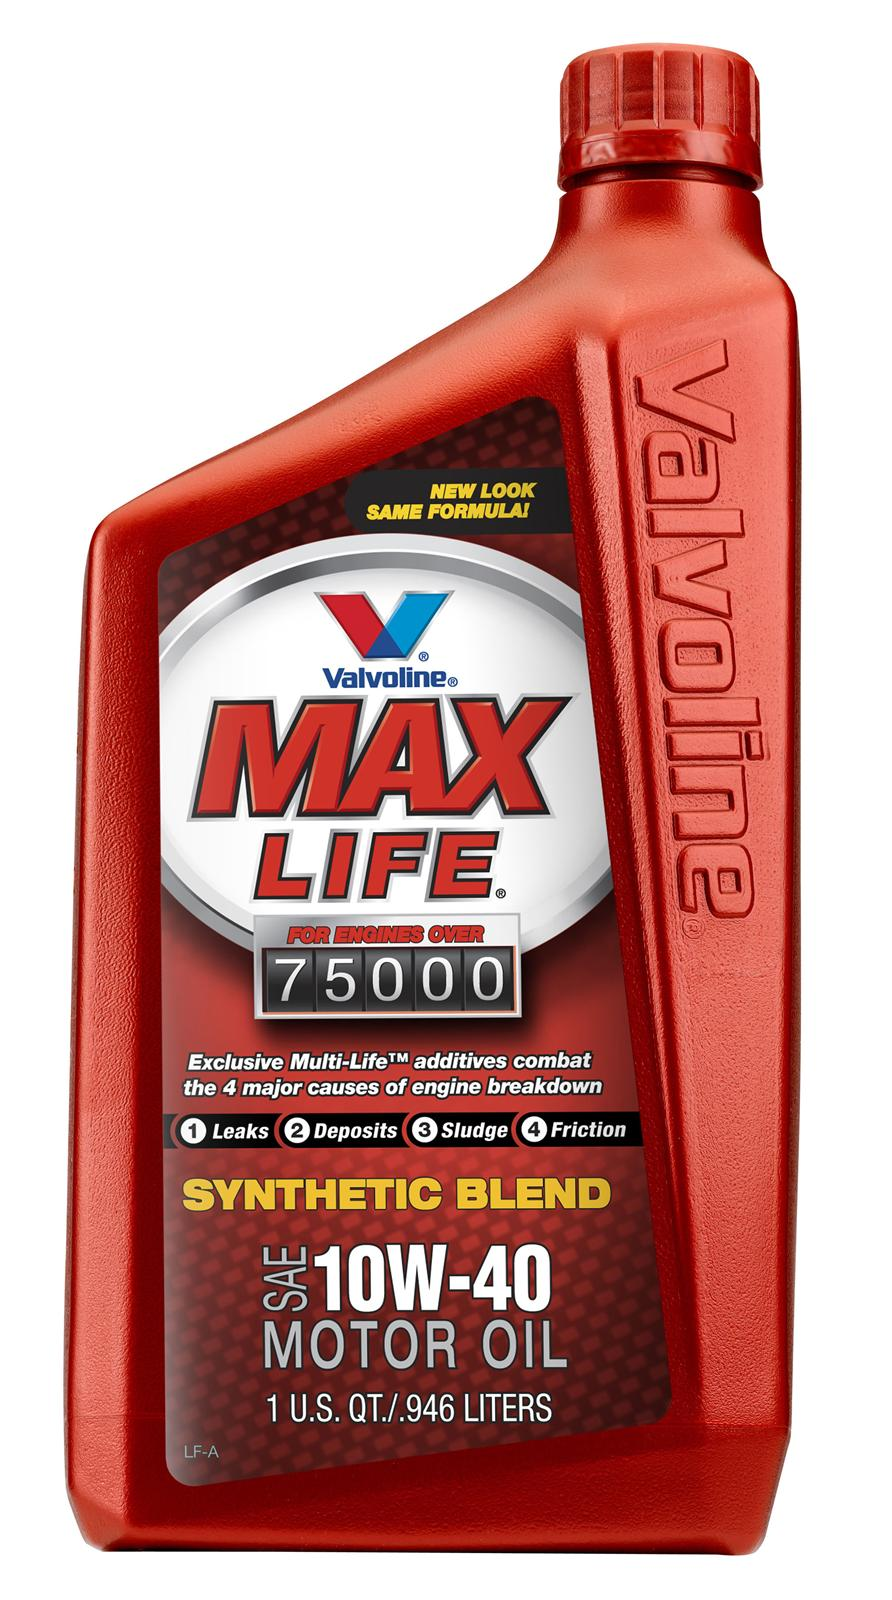 Valvoline MaxLife is the first motor oil specially formulated to address the unique needs of higher mileage engines. Valvoline MaxLife is a blend of synthetic and premium conventional basestocks with seal conditioning agents, extra cleaning agents, additional anti-wear additives and novel friction modifiers for added protection.